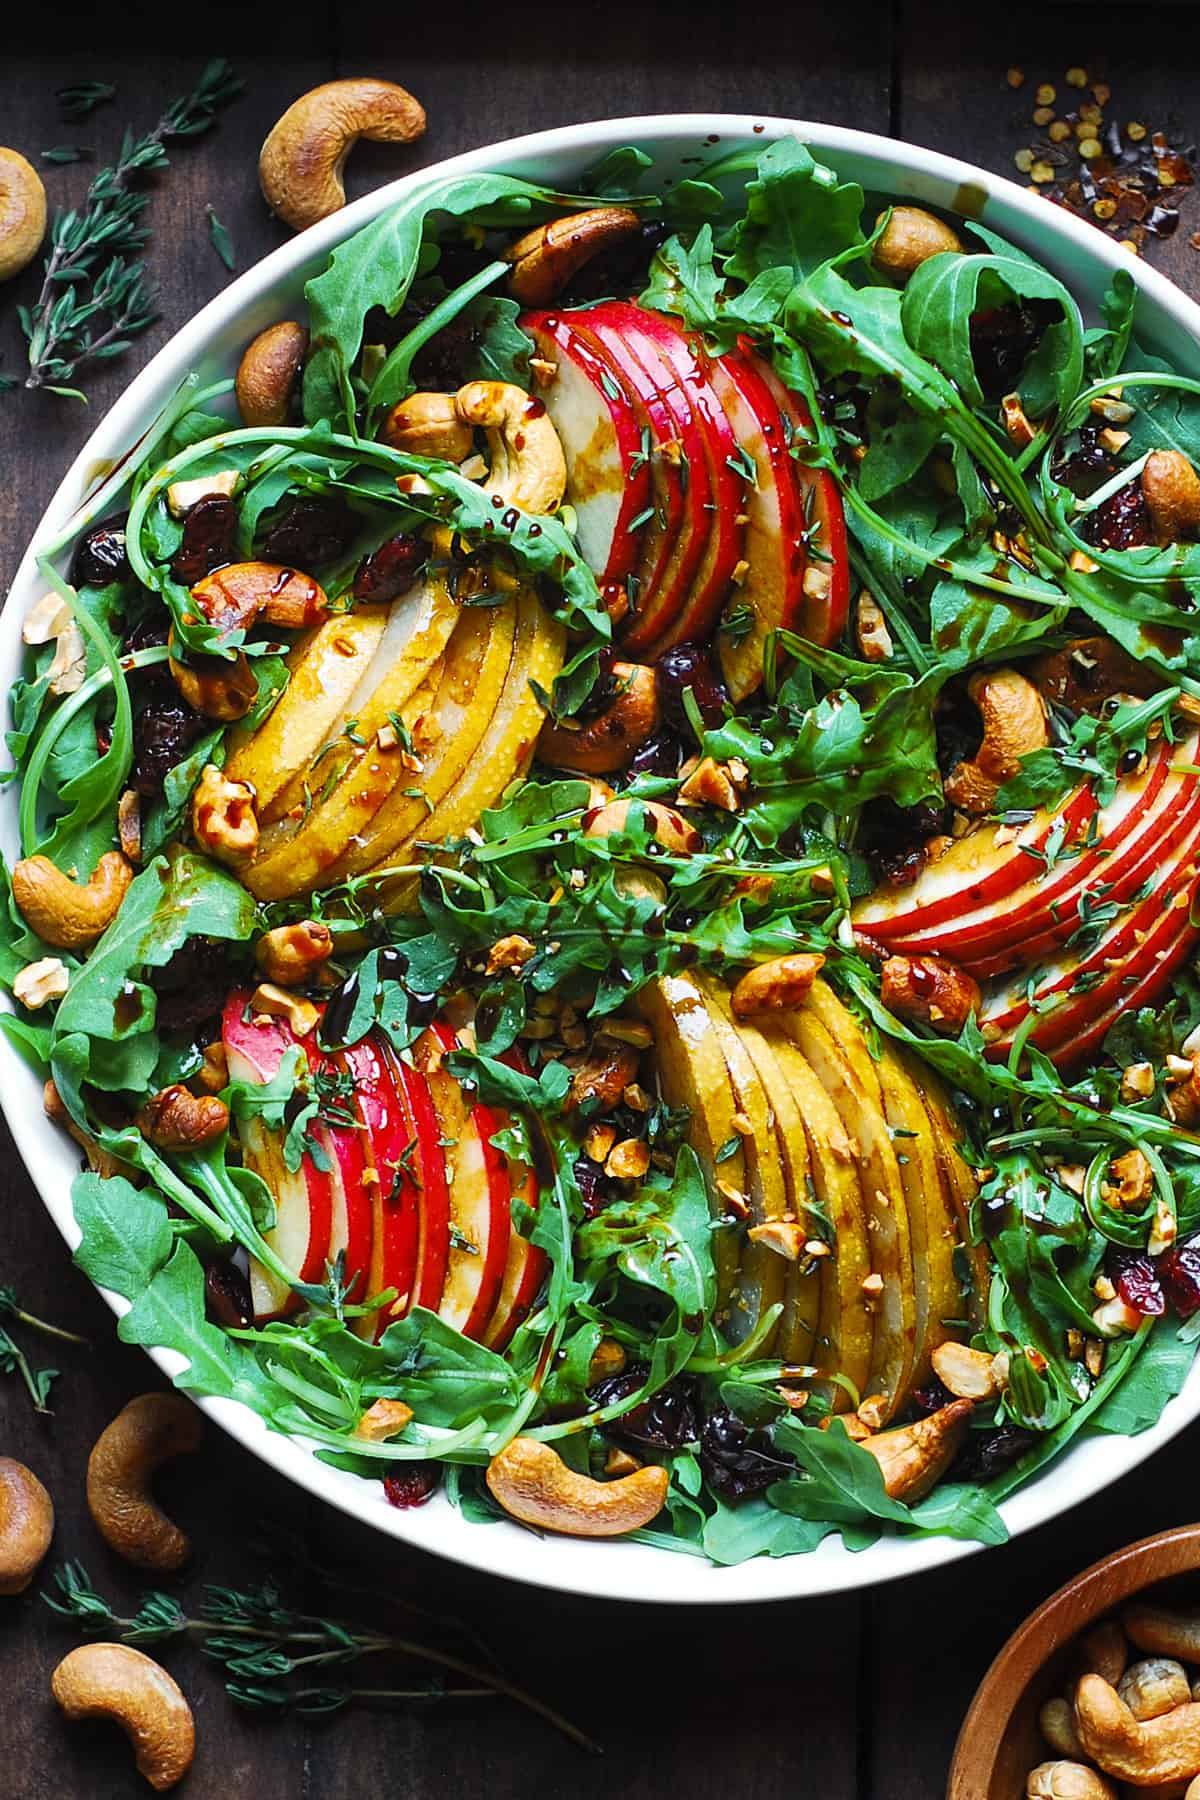 arugula salad with pears, apples, cashews, and dried cranberries in a white bowl